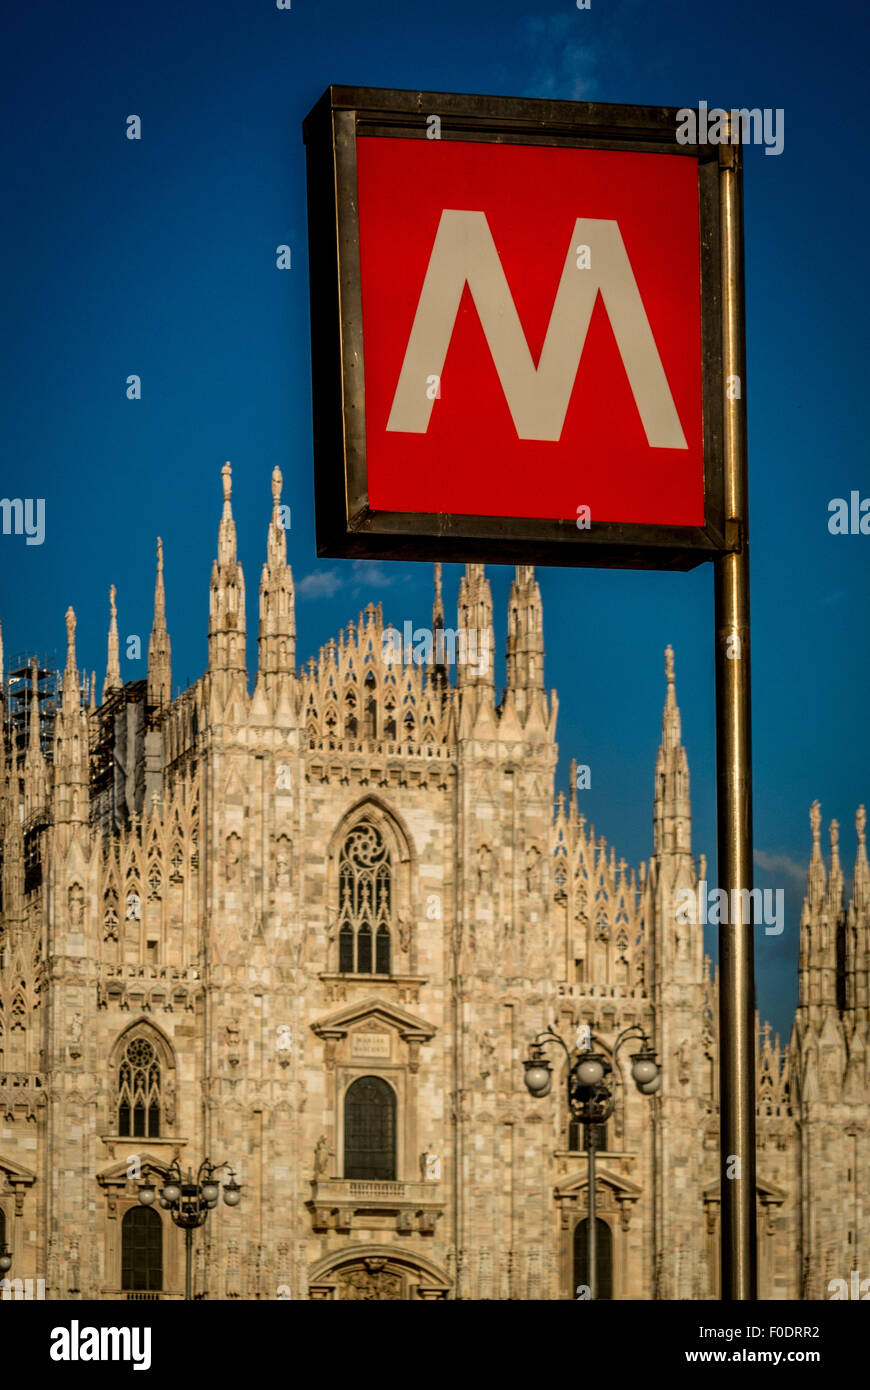 Milan Cathedral with a metro sign outside. - Stock Image